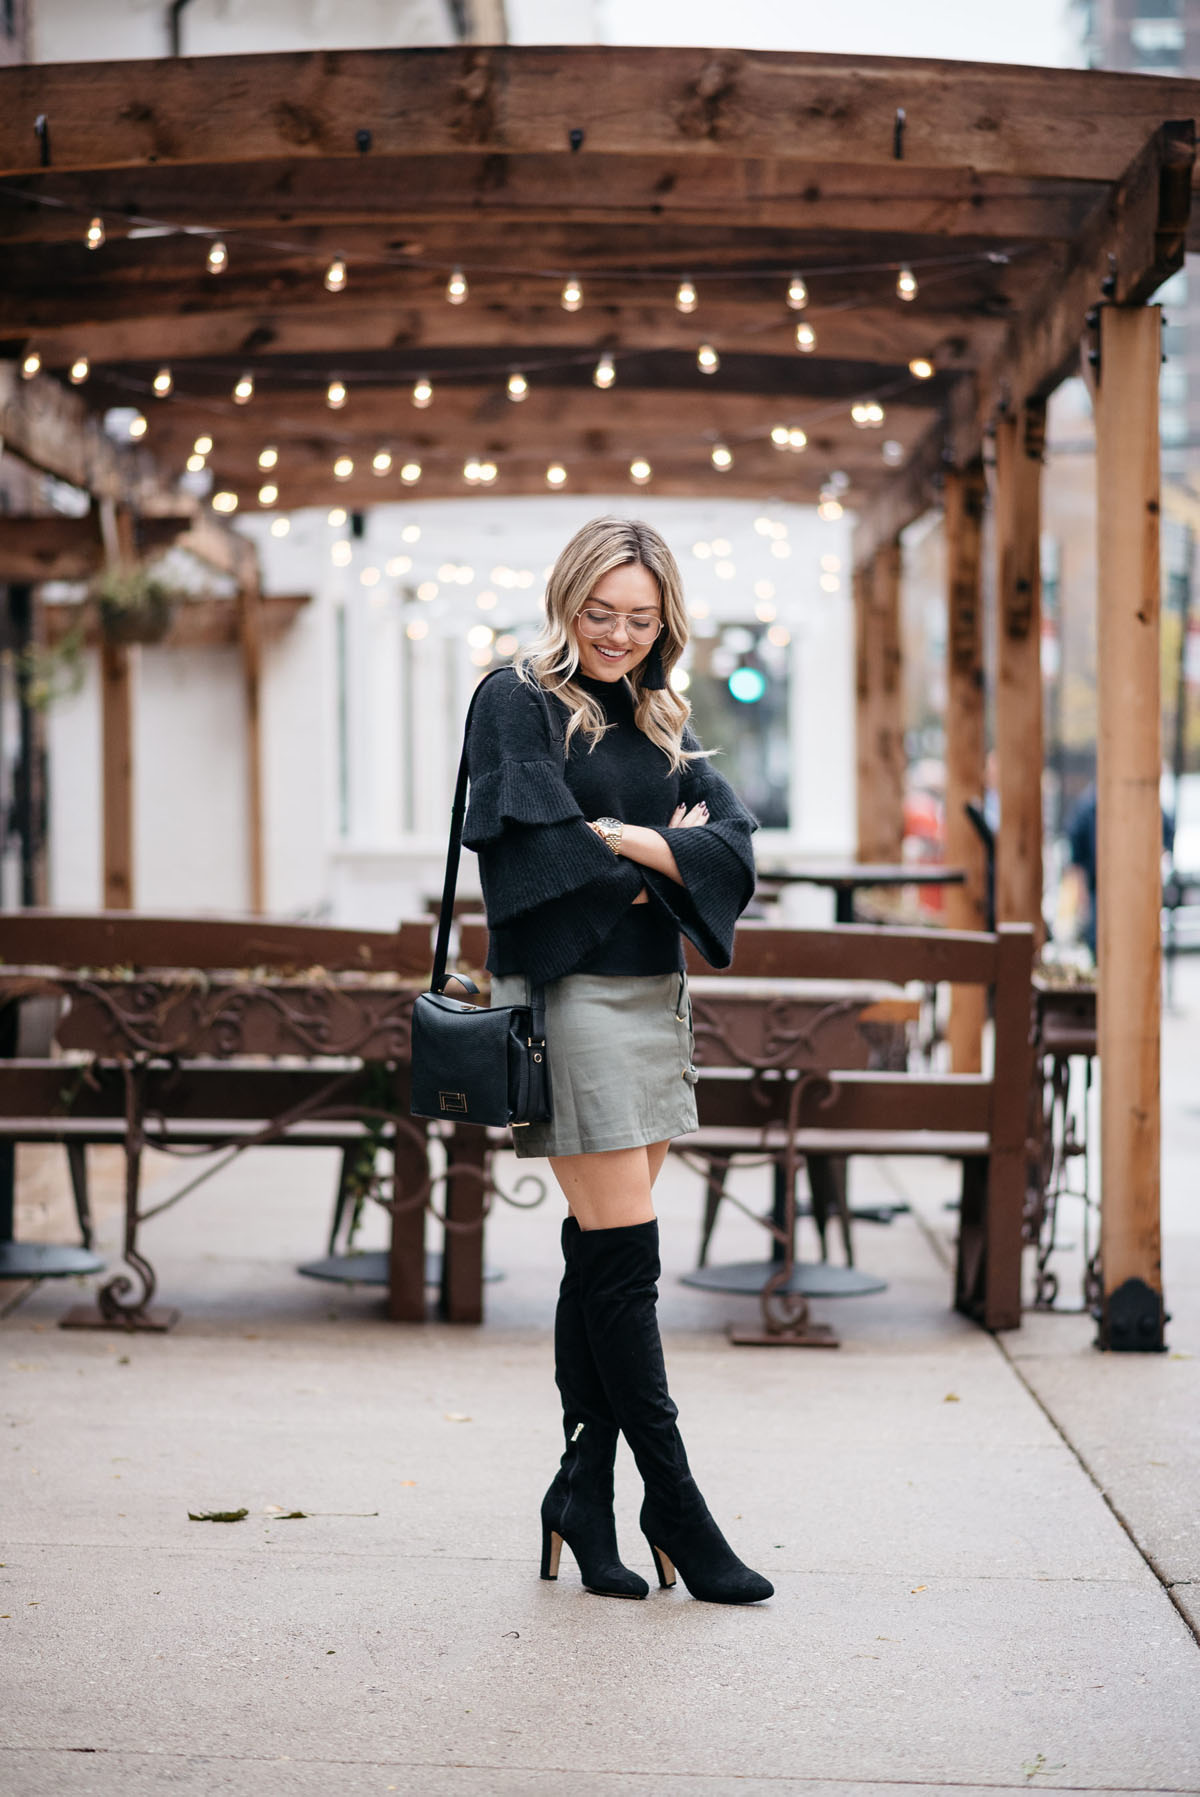 a75899b2cf8 Chicago lifestyle influencer Jessica Sturdy of Bows   Sequins wearing a  black ruffled sleeve sweater with. Thanksgiving Outfit ...